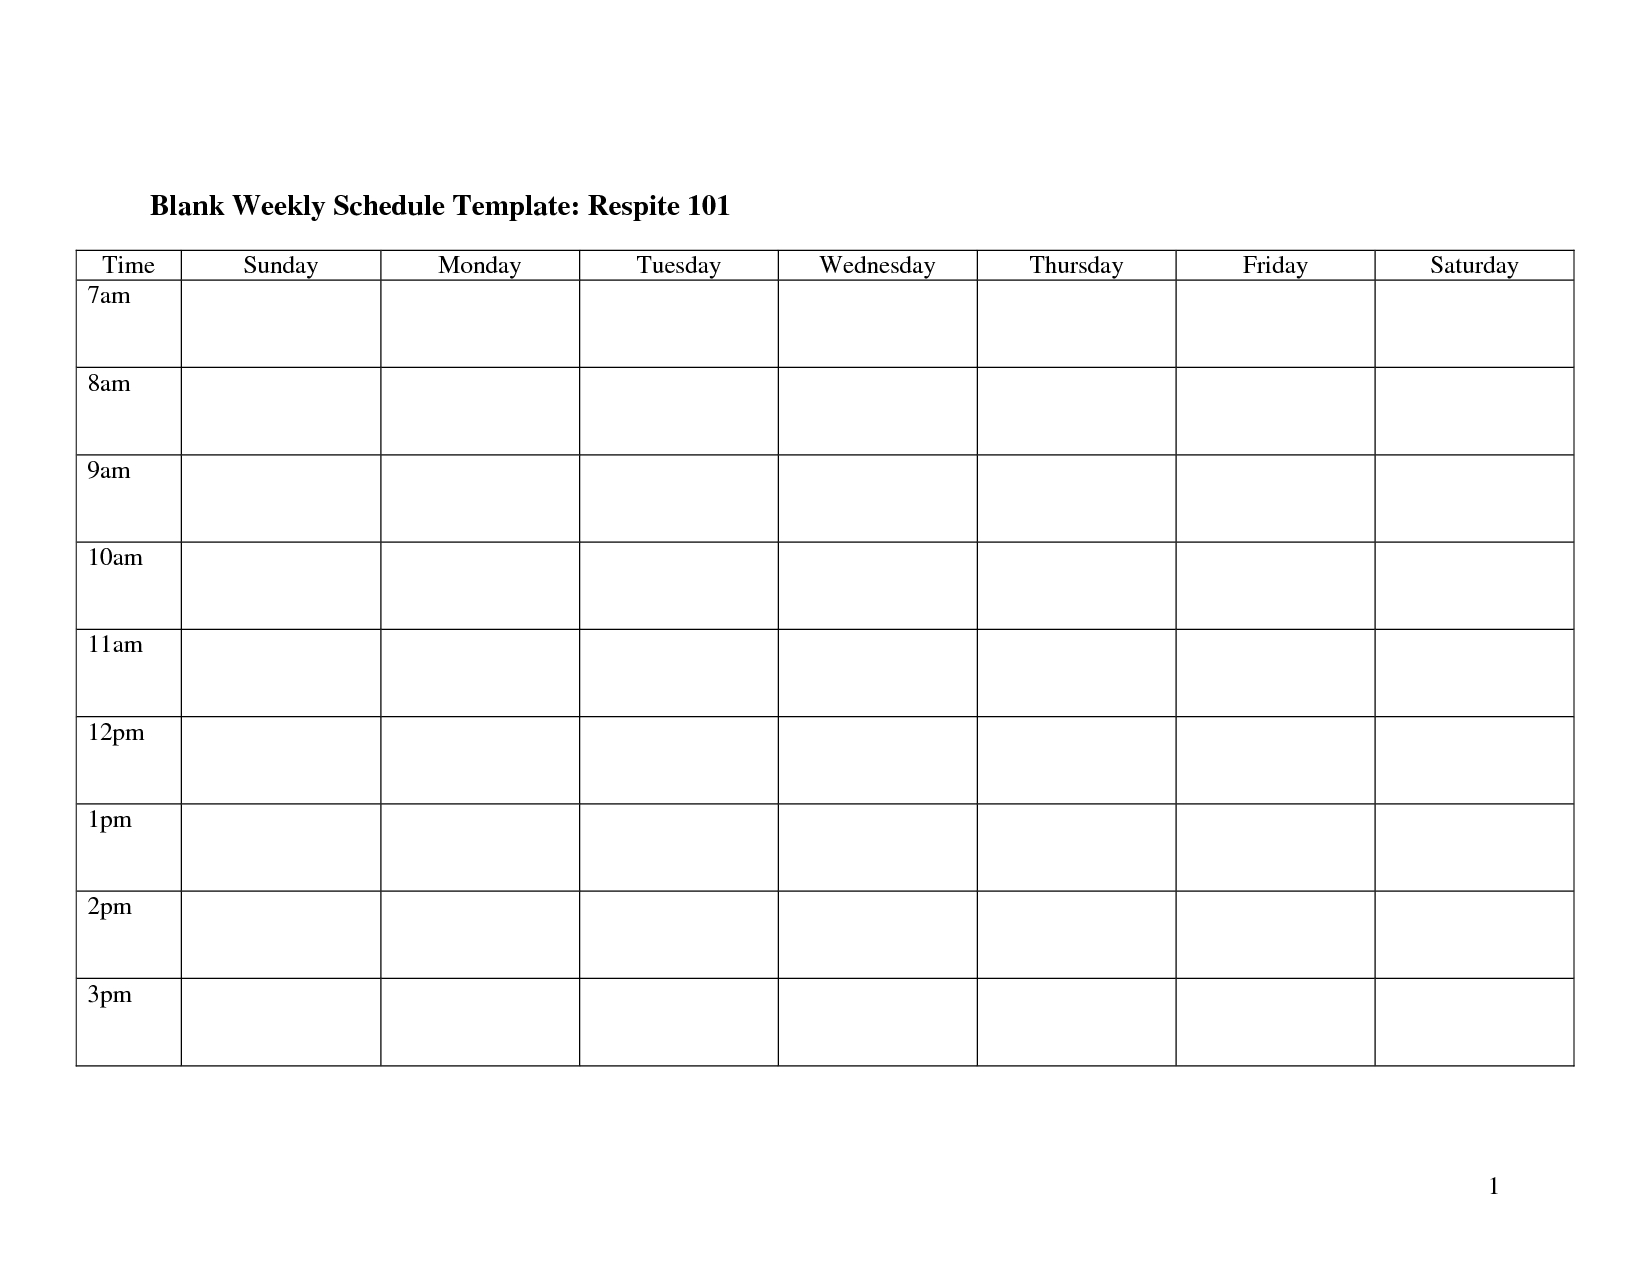 Weekly Appointment Schedule Ate Sunday Through Saturday Calendar E2 pertaining to Appointment Schedule Template Sunday To Saturday